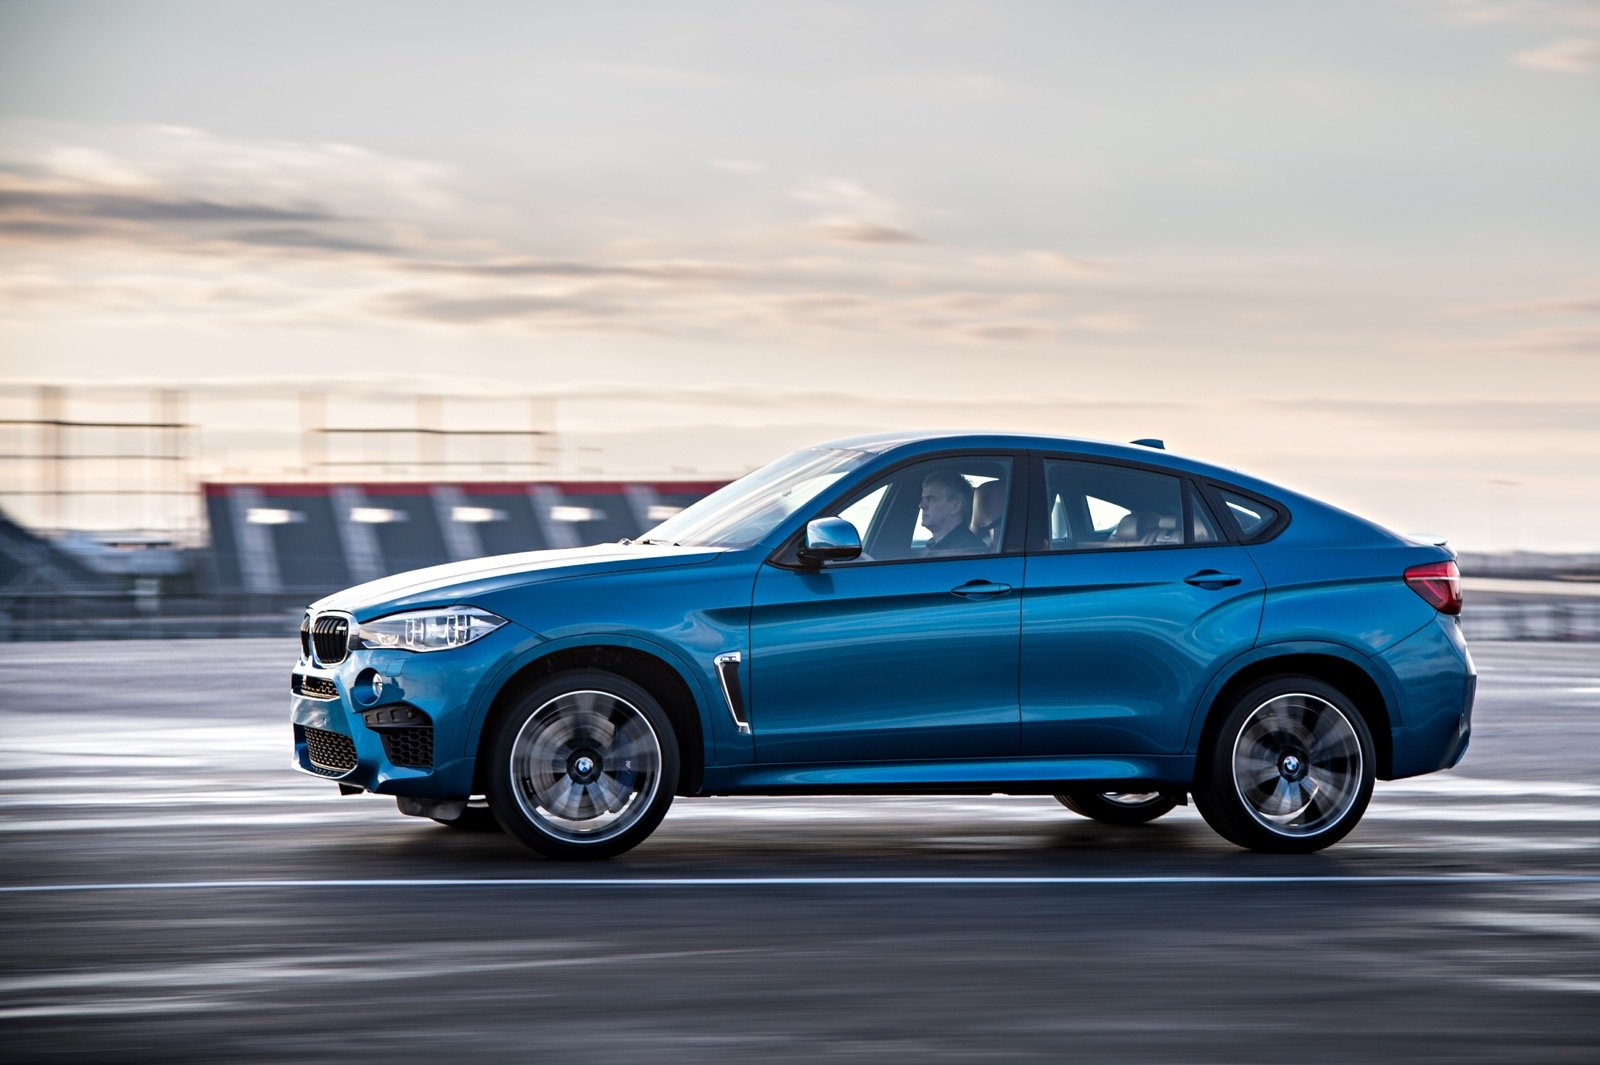 2015 Bmw X6 M Review Caradvice